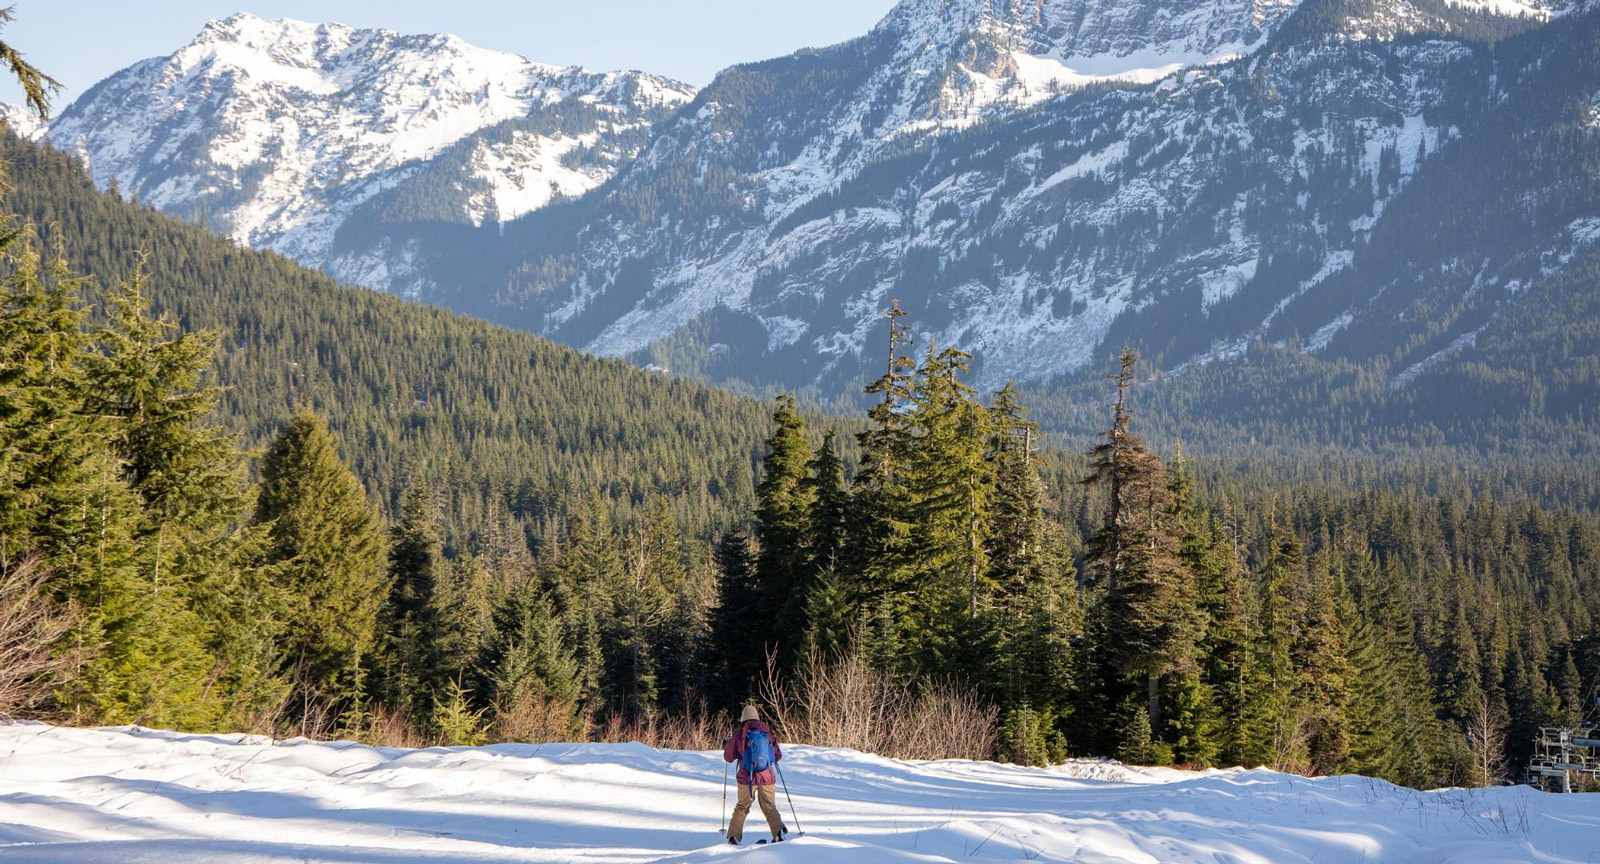 Long shot of a woman backcountry skiing across snow with a pine forest and snow-capped mountains in the distance.